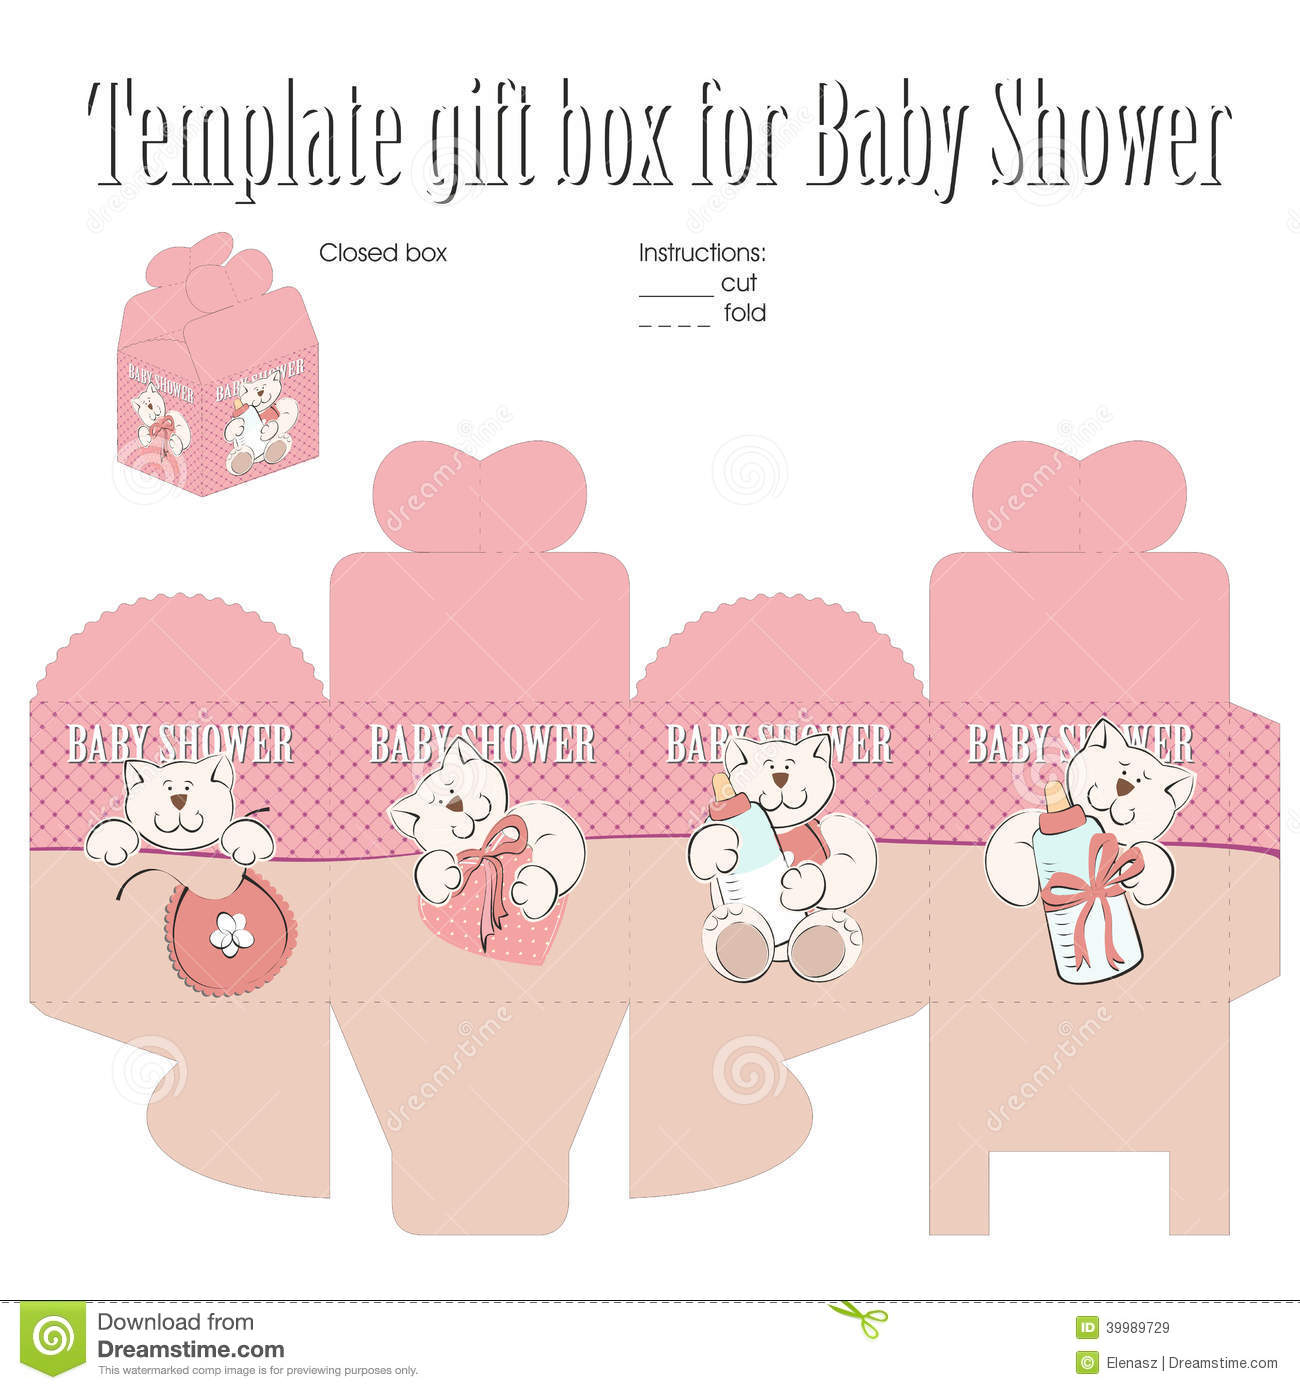 Gift Box Template Photography Image 34526862 – Template for Gift Box